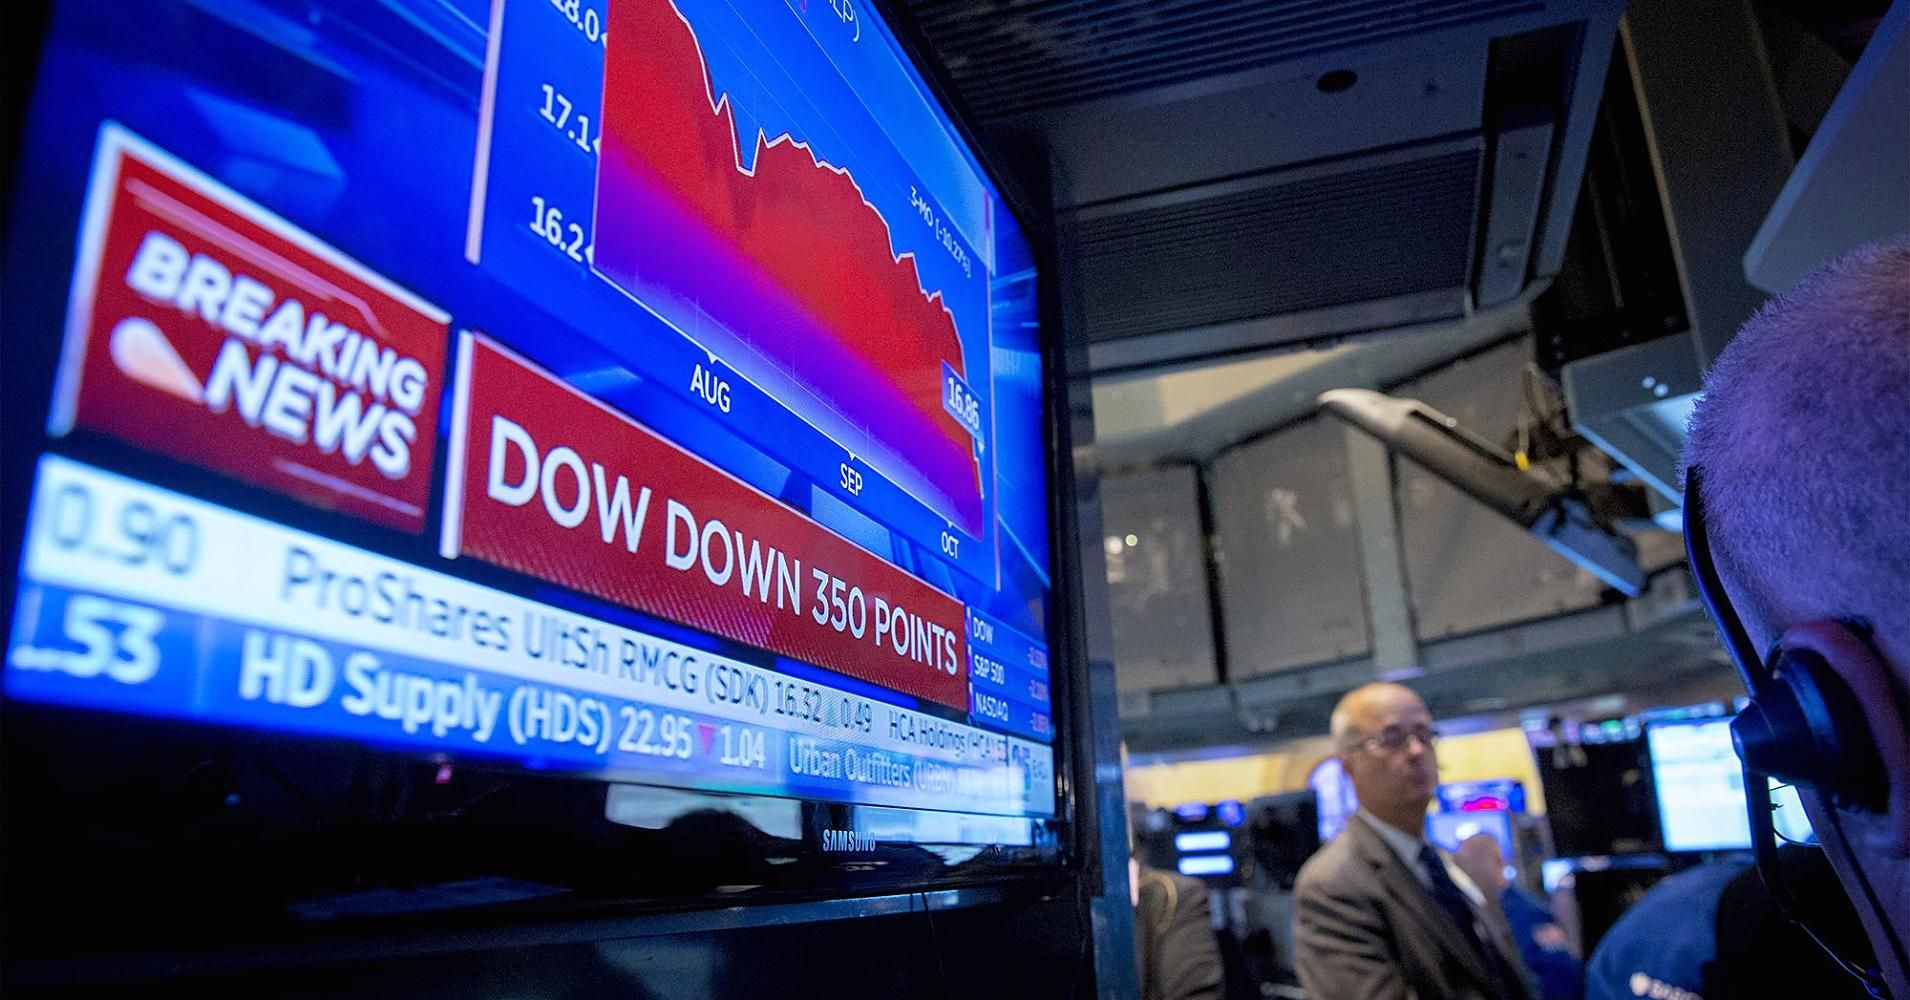 The Dow Just Hit 20,000 for the First Time. Hold Your Applause